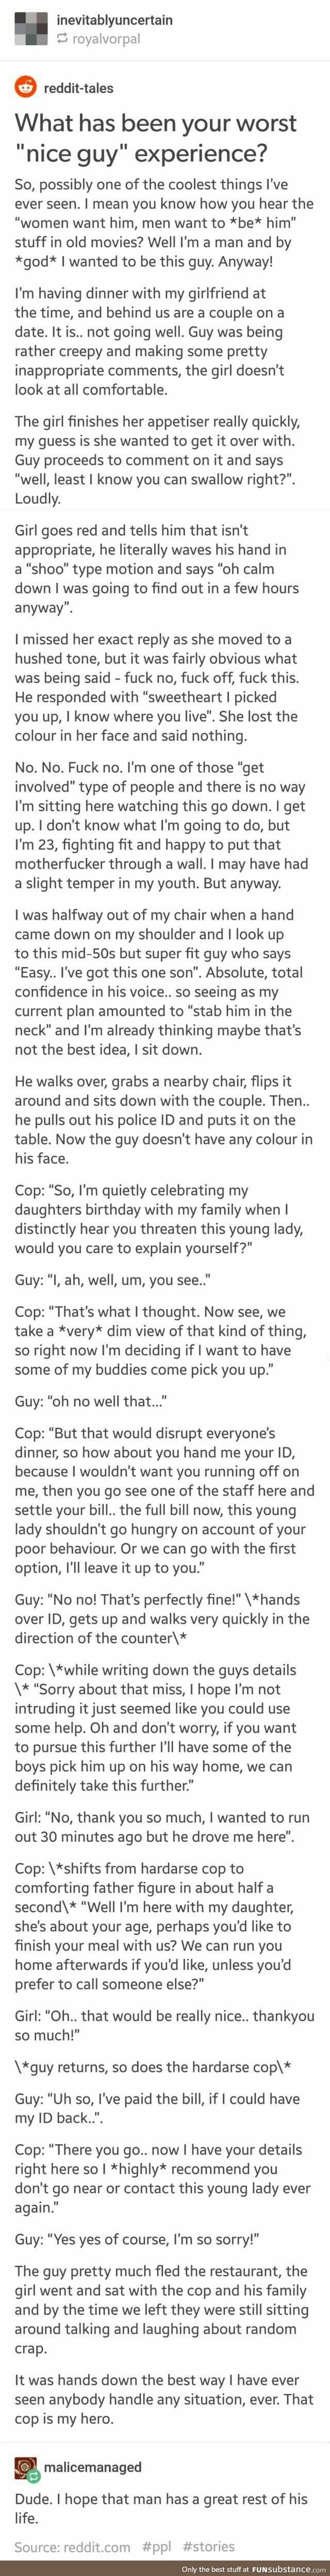 """I'm putting this in my """"inspirational"""" board because this cop is a shining example of how rape threats should be dealt with. All too often, men (even police) dismiss a woman's cry for help or justice and excuse the creep's behavior. So, yeah, these two men restored my faith a little. Thank you, to the outsiders who will step in to make sure others don't have to live a nightmare."""